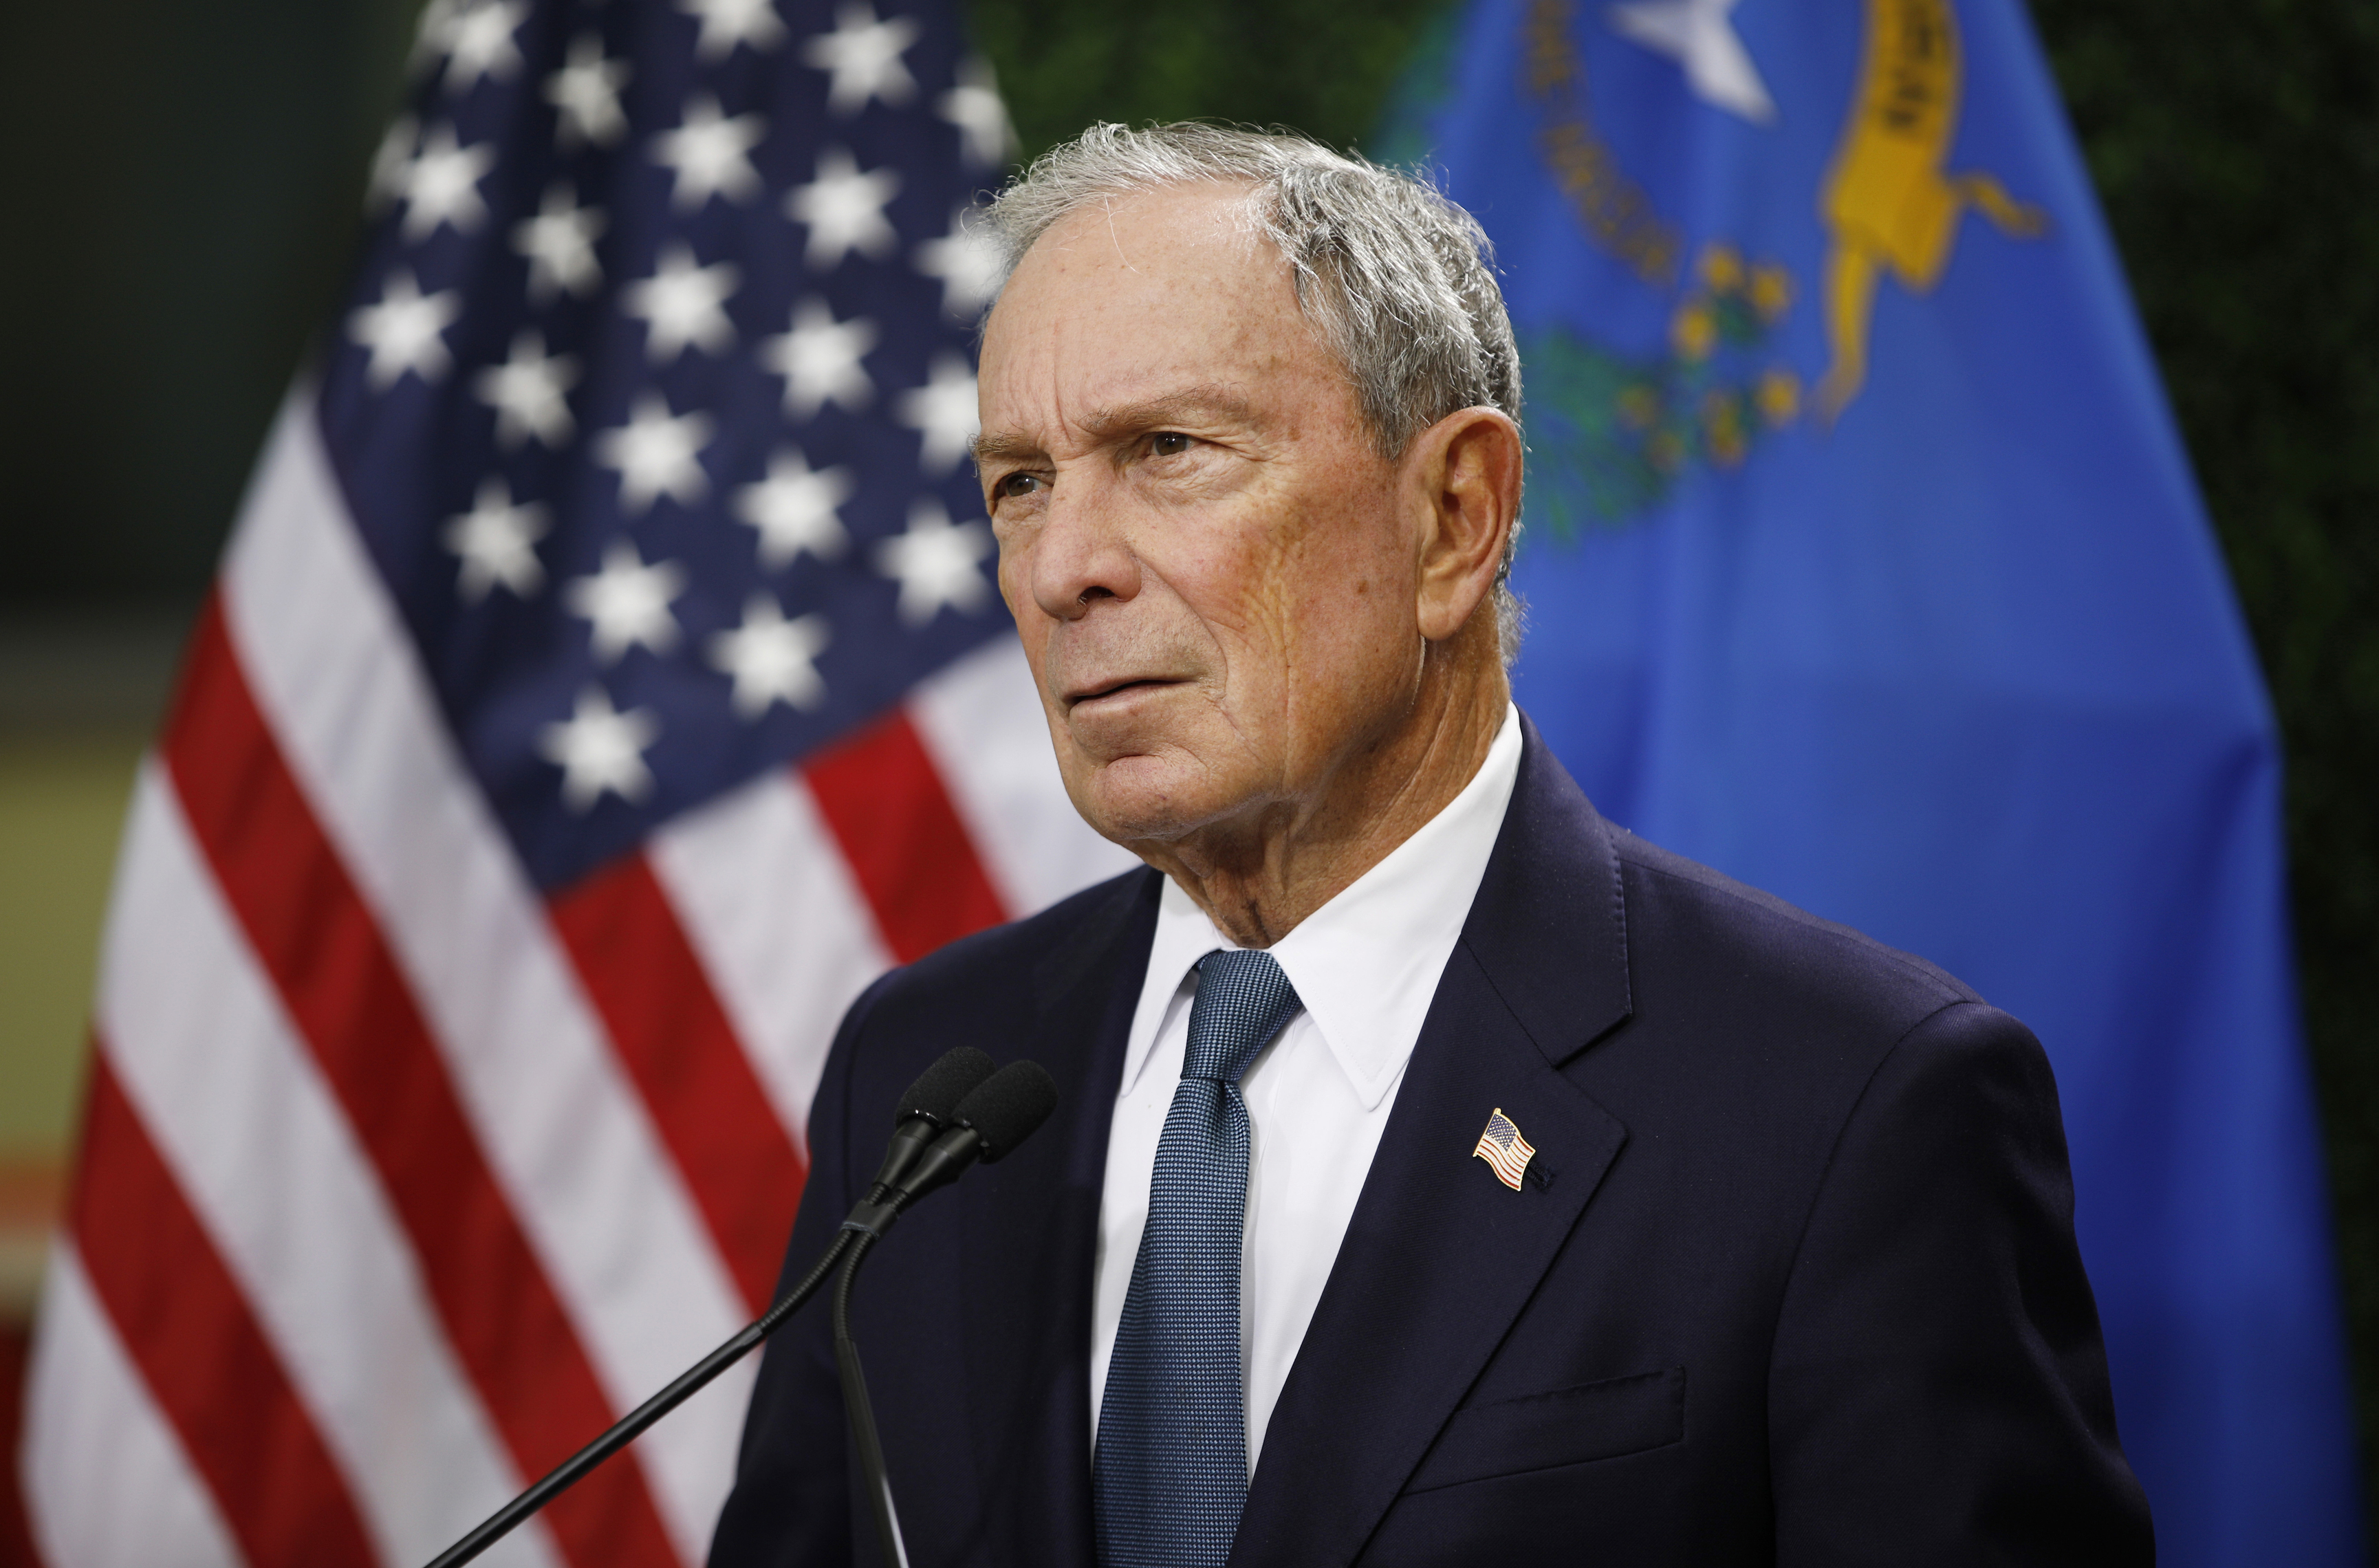 Former New York City Mayor Michael Bloomberg speaks at a news conference in Las Vegas on Feb. 26, 2019.